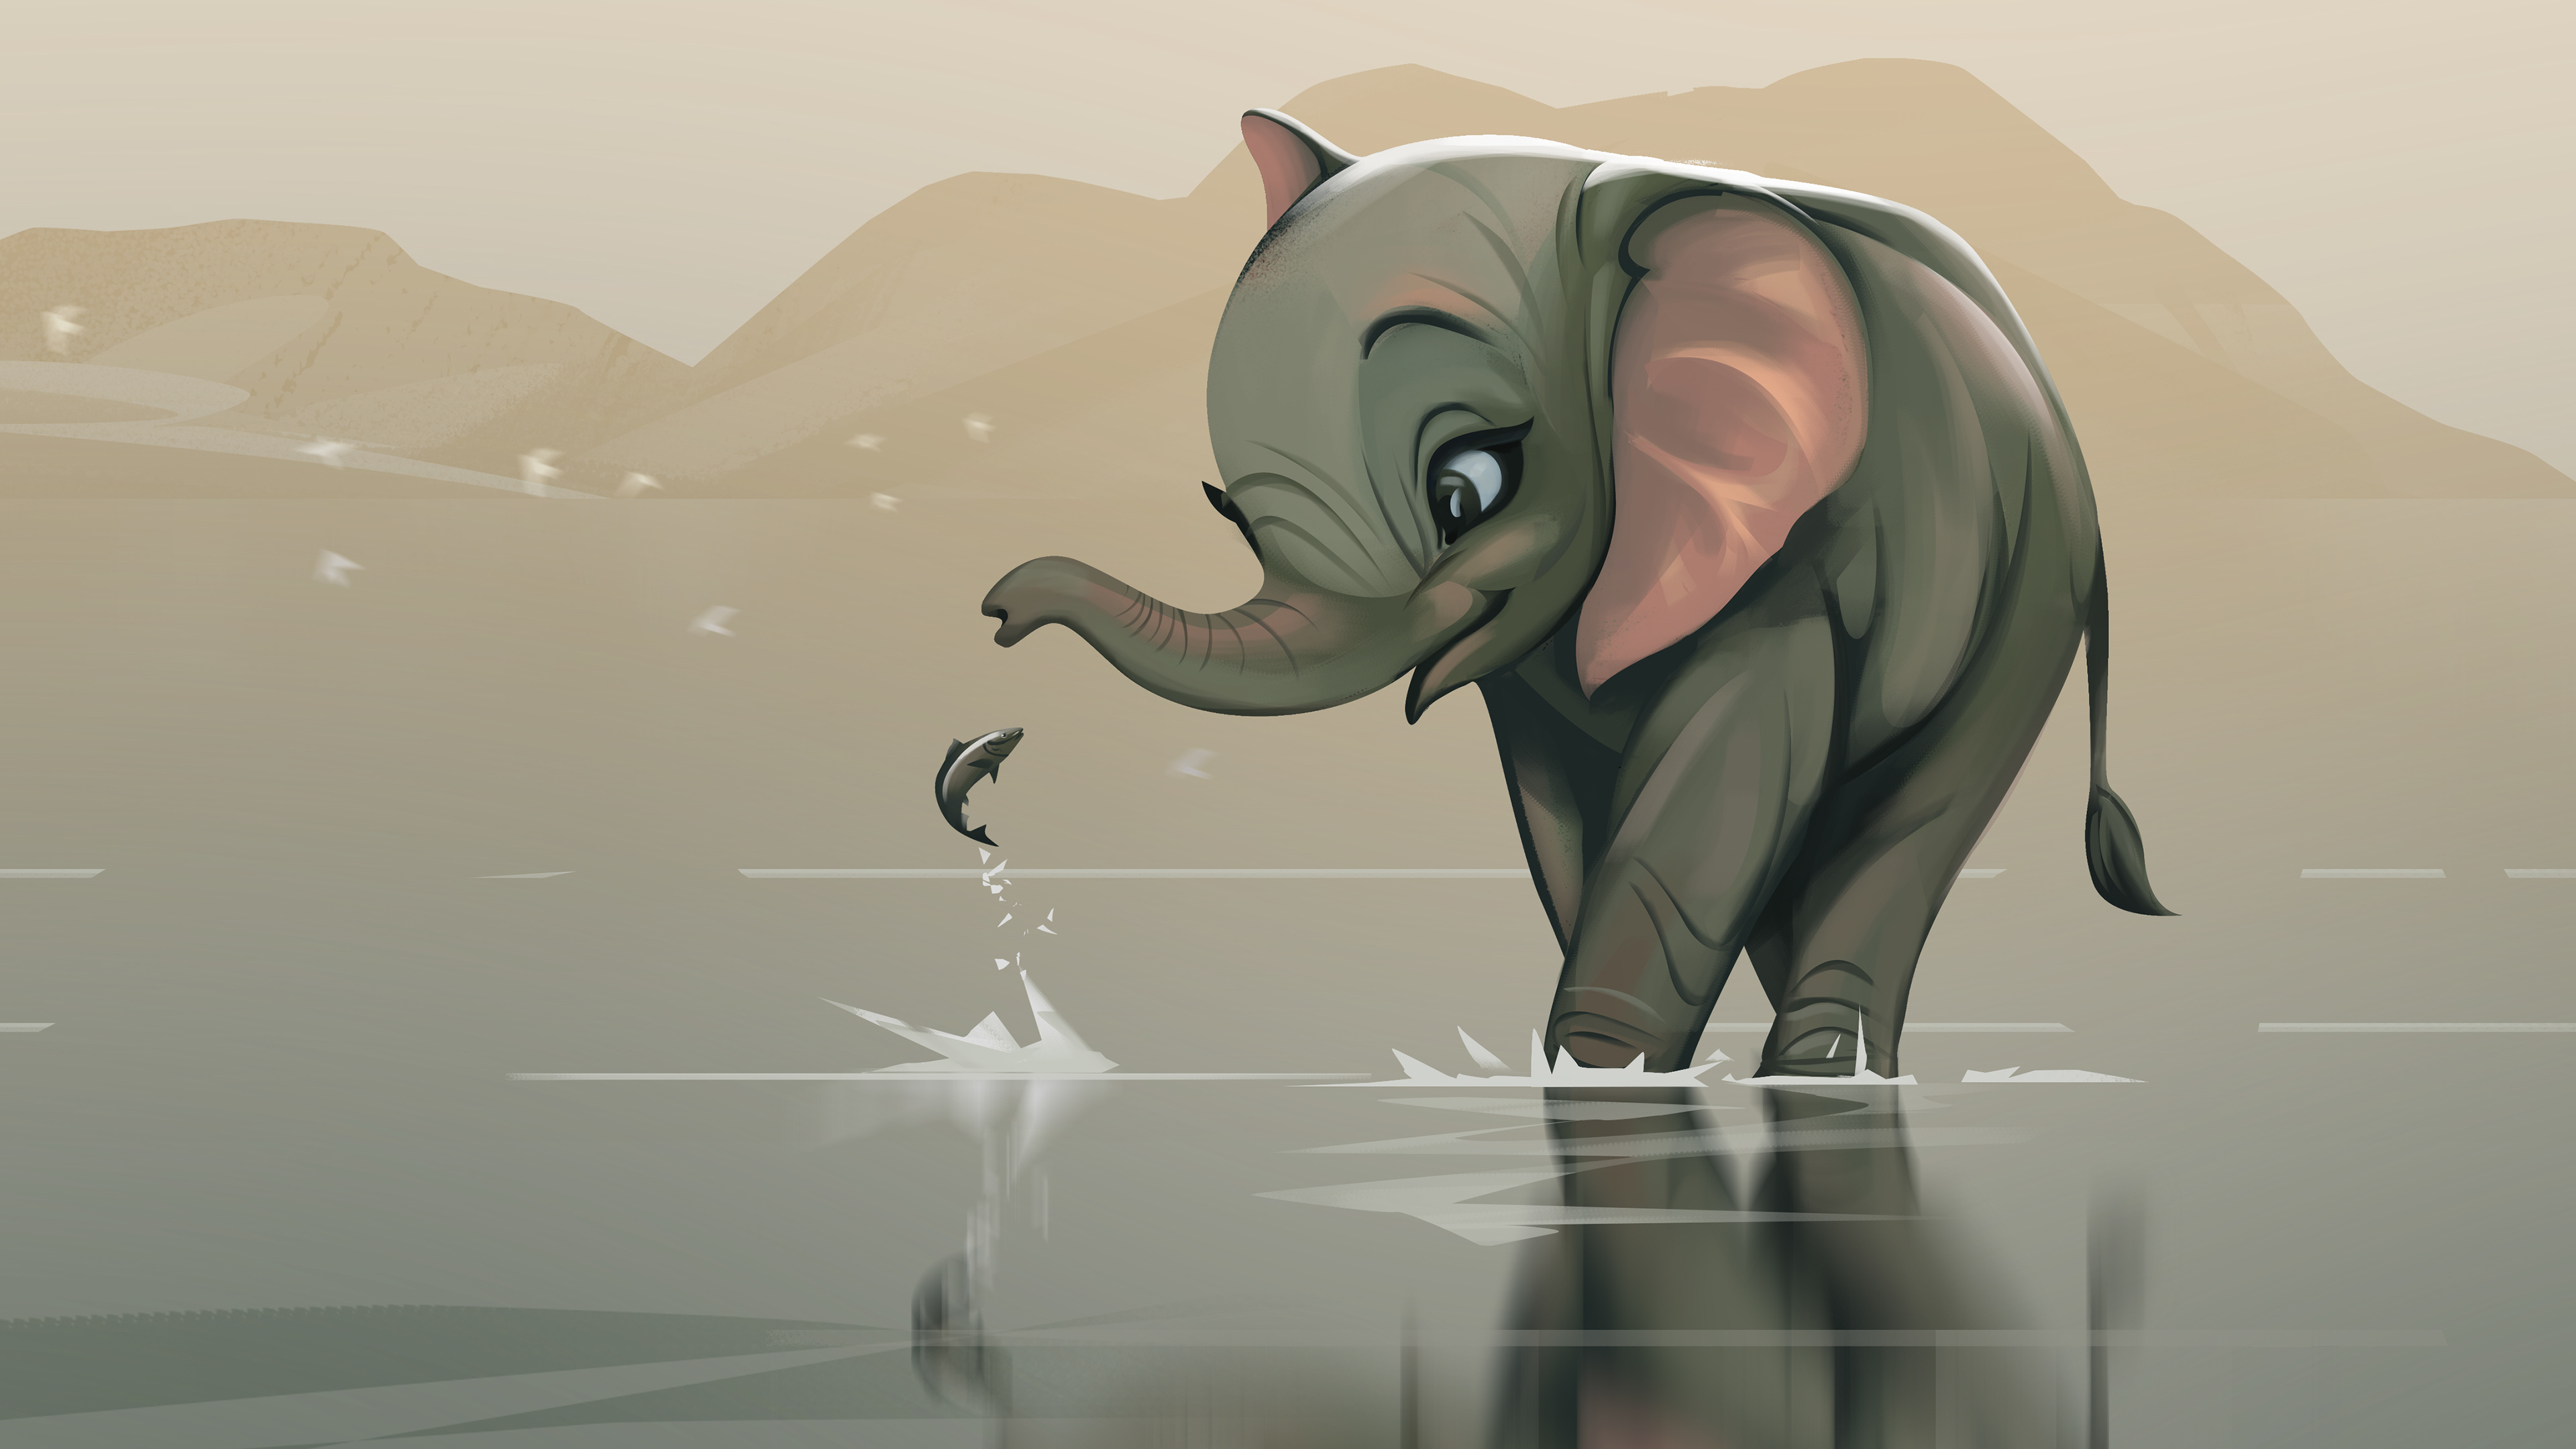 friends forever illustration 1541970707 - Friends Forever Illustration - illustration wallpapers, hd-wallpapers, fish wallpapers, elephant wallpapers, digital art wallpapers, behance wallpapers, artwork wallpapers, artist wallpapers, 4k-wallpapers